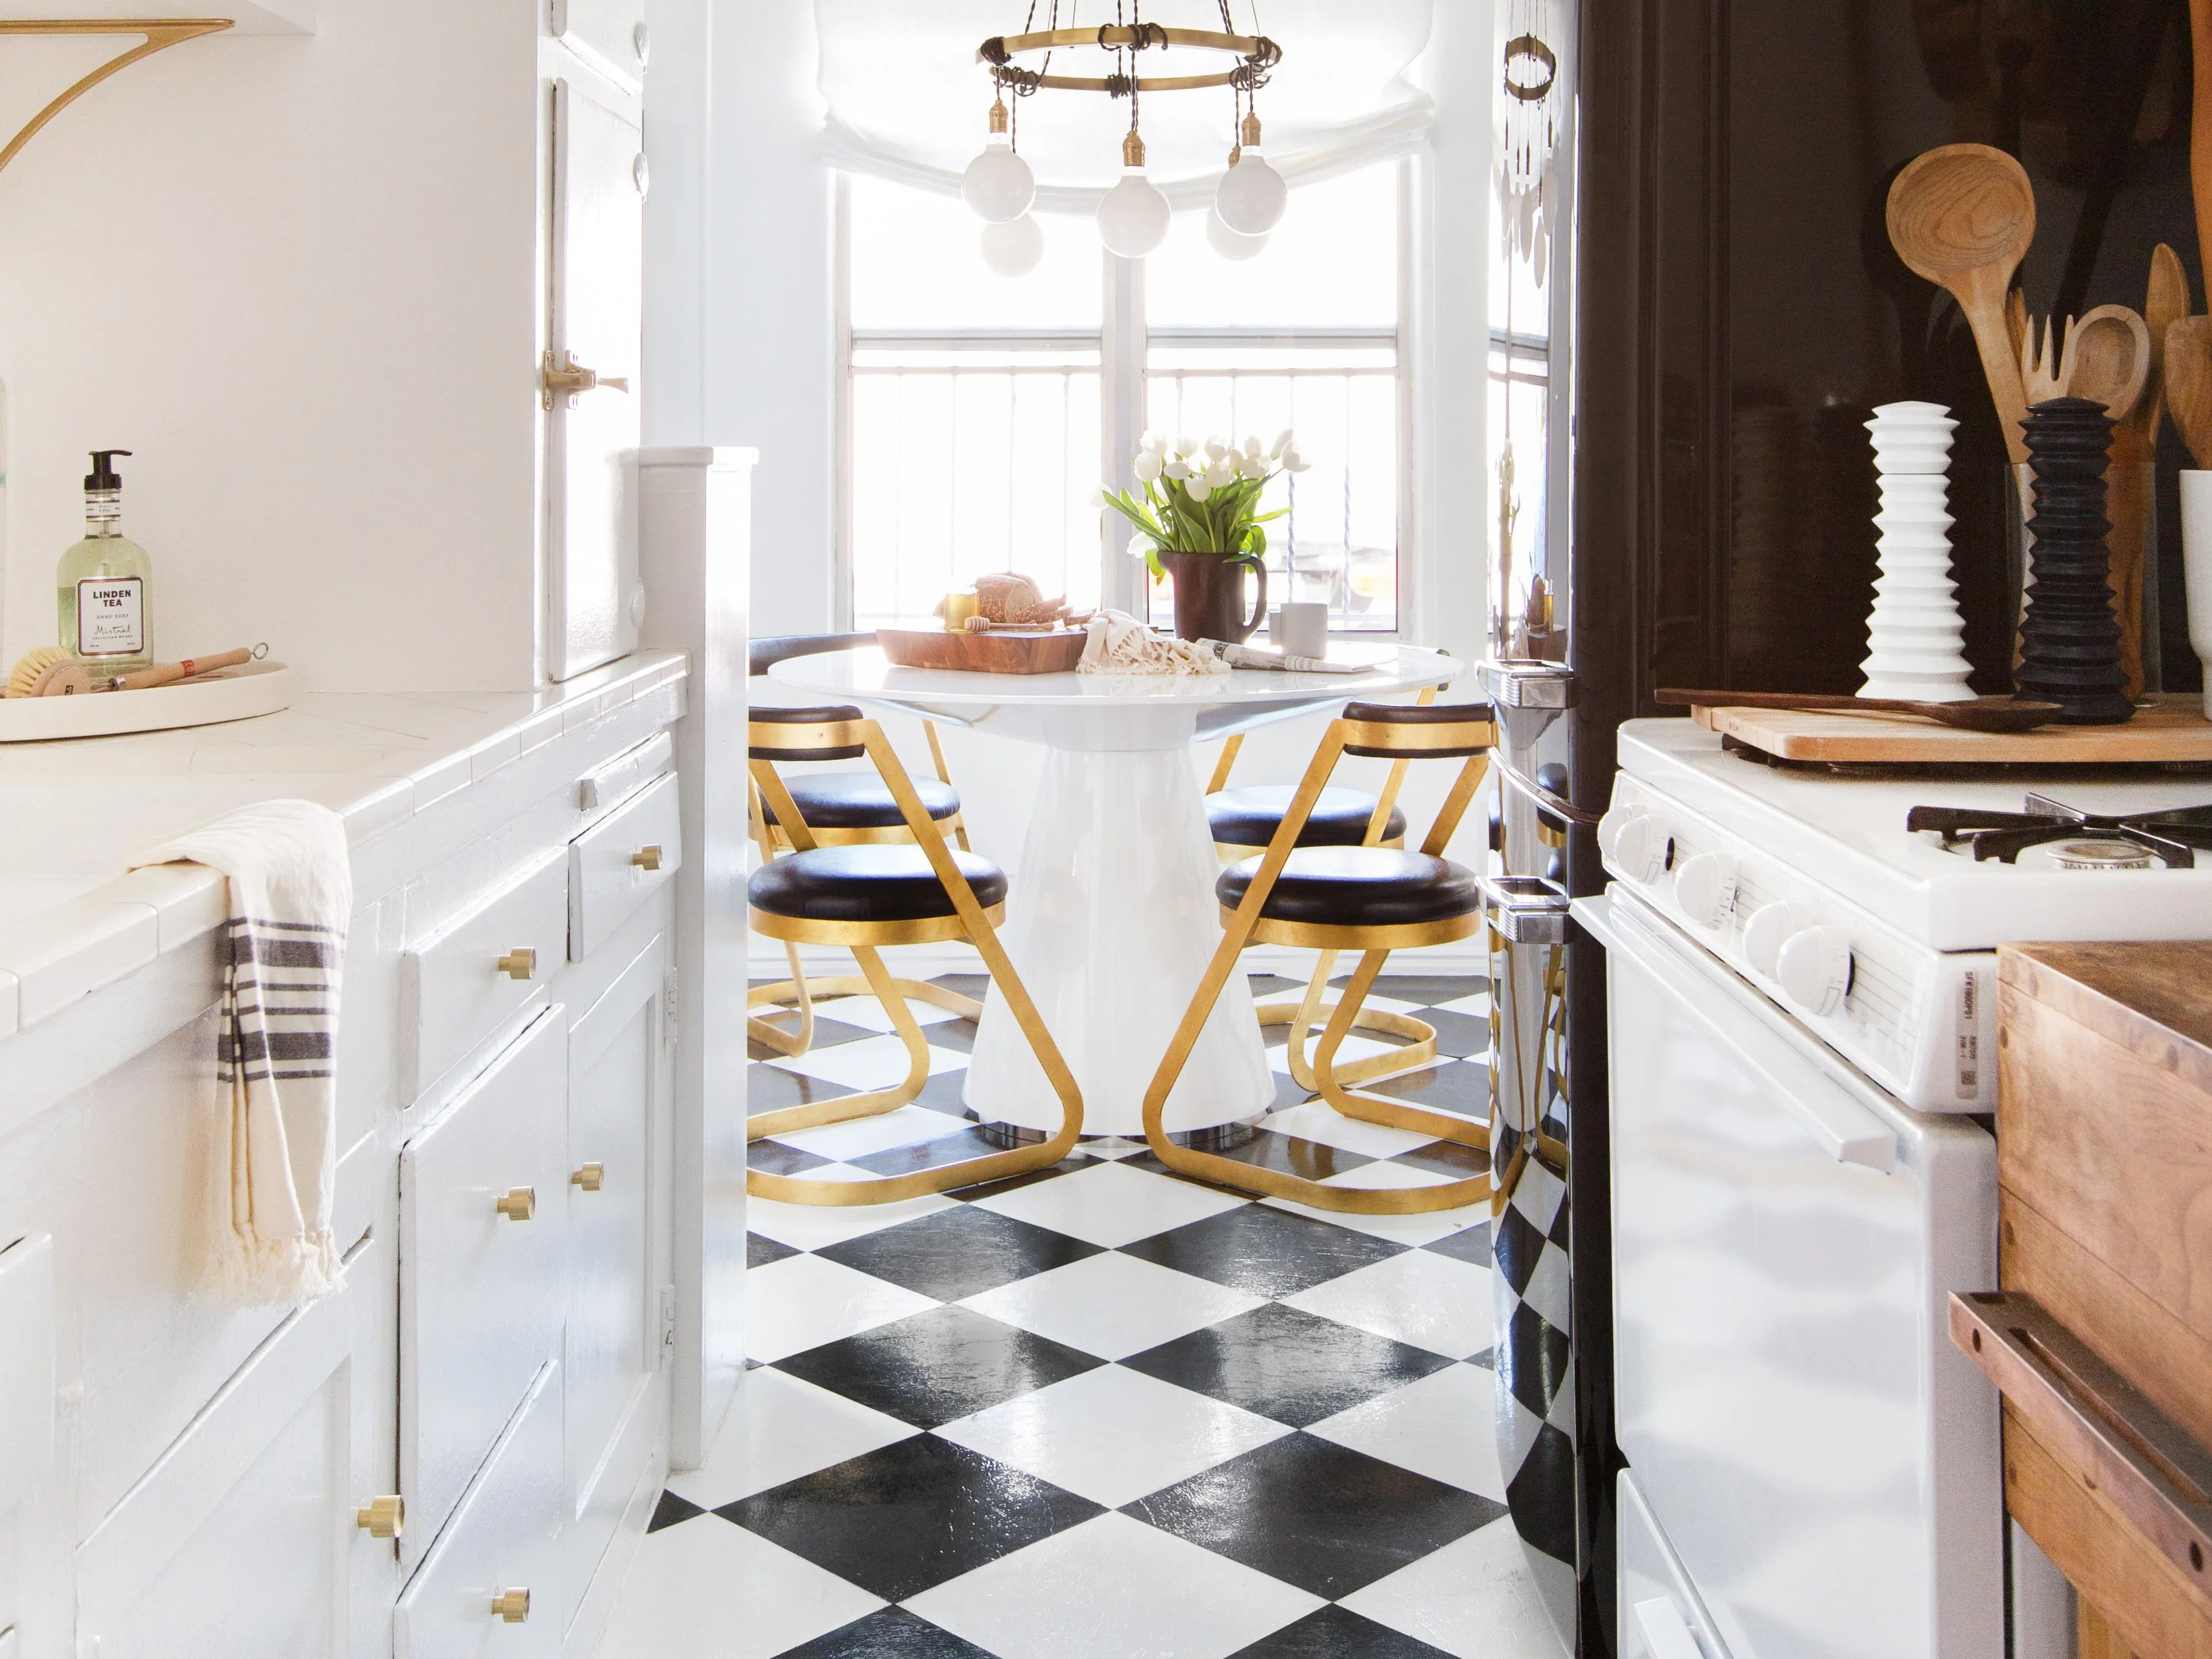 kitchen rental brizo faucets a clever tile solution architectural digest 50 weekend friendly fix for ugly floors